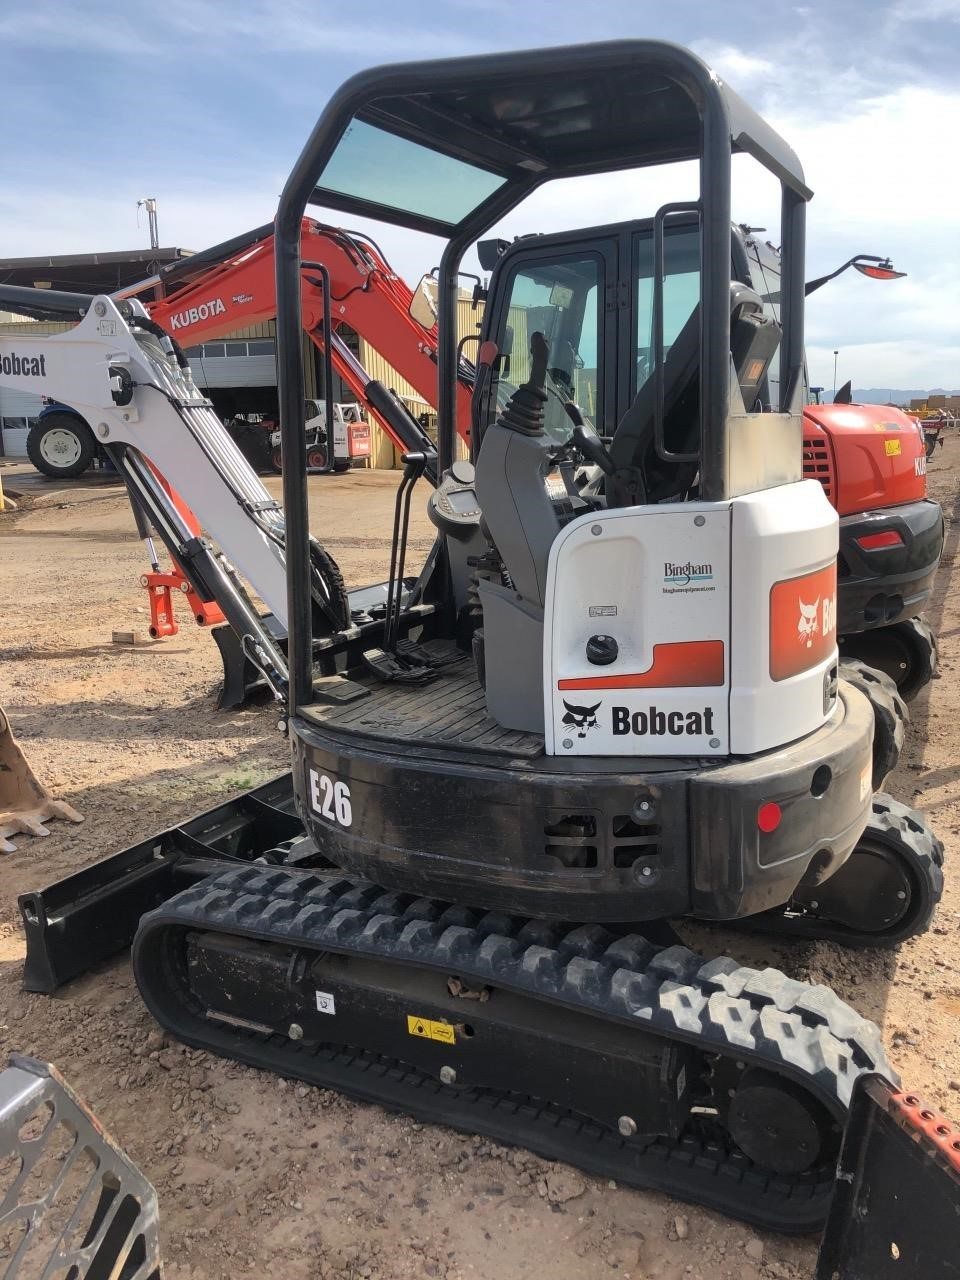 Bobcat E26 Excavators and Mini Excavator